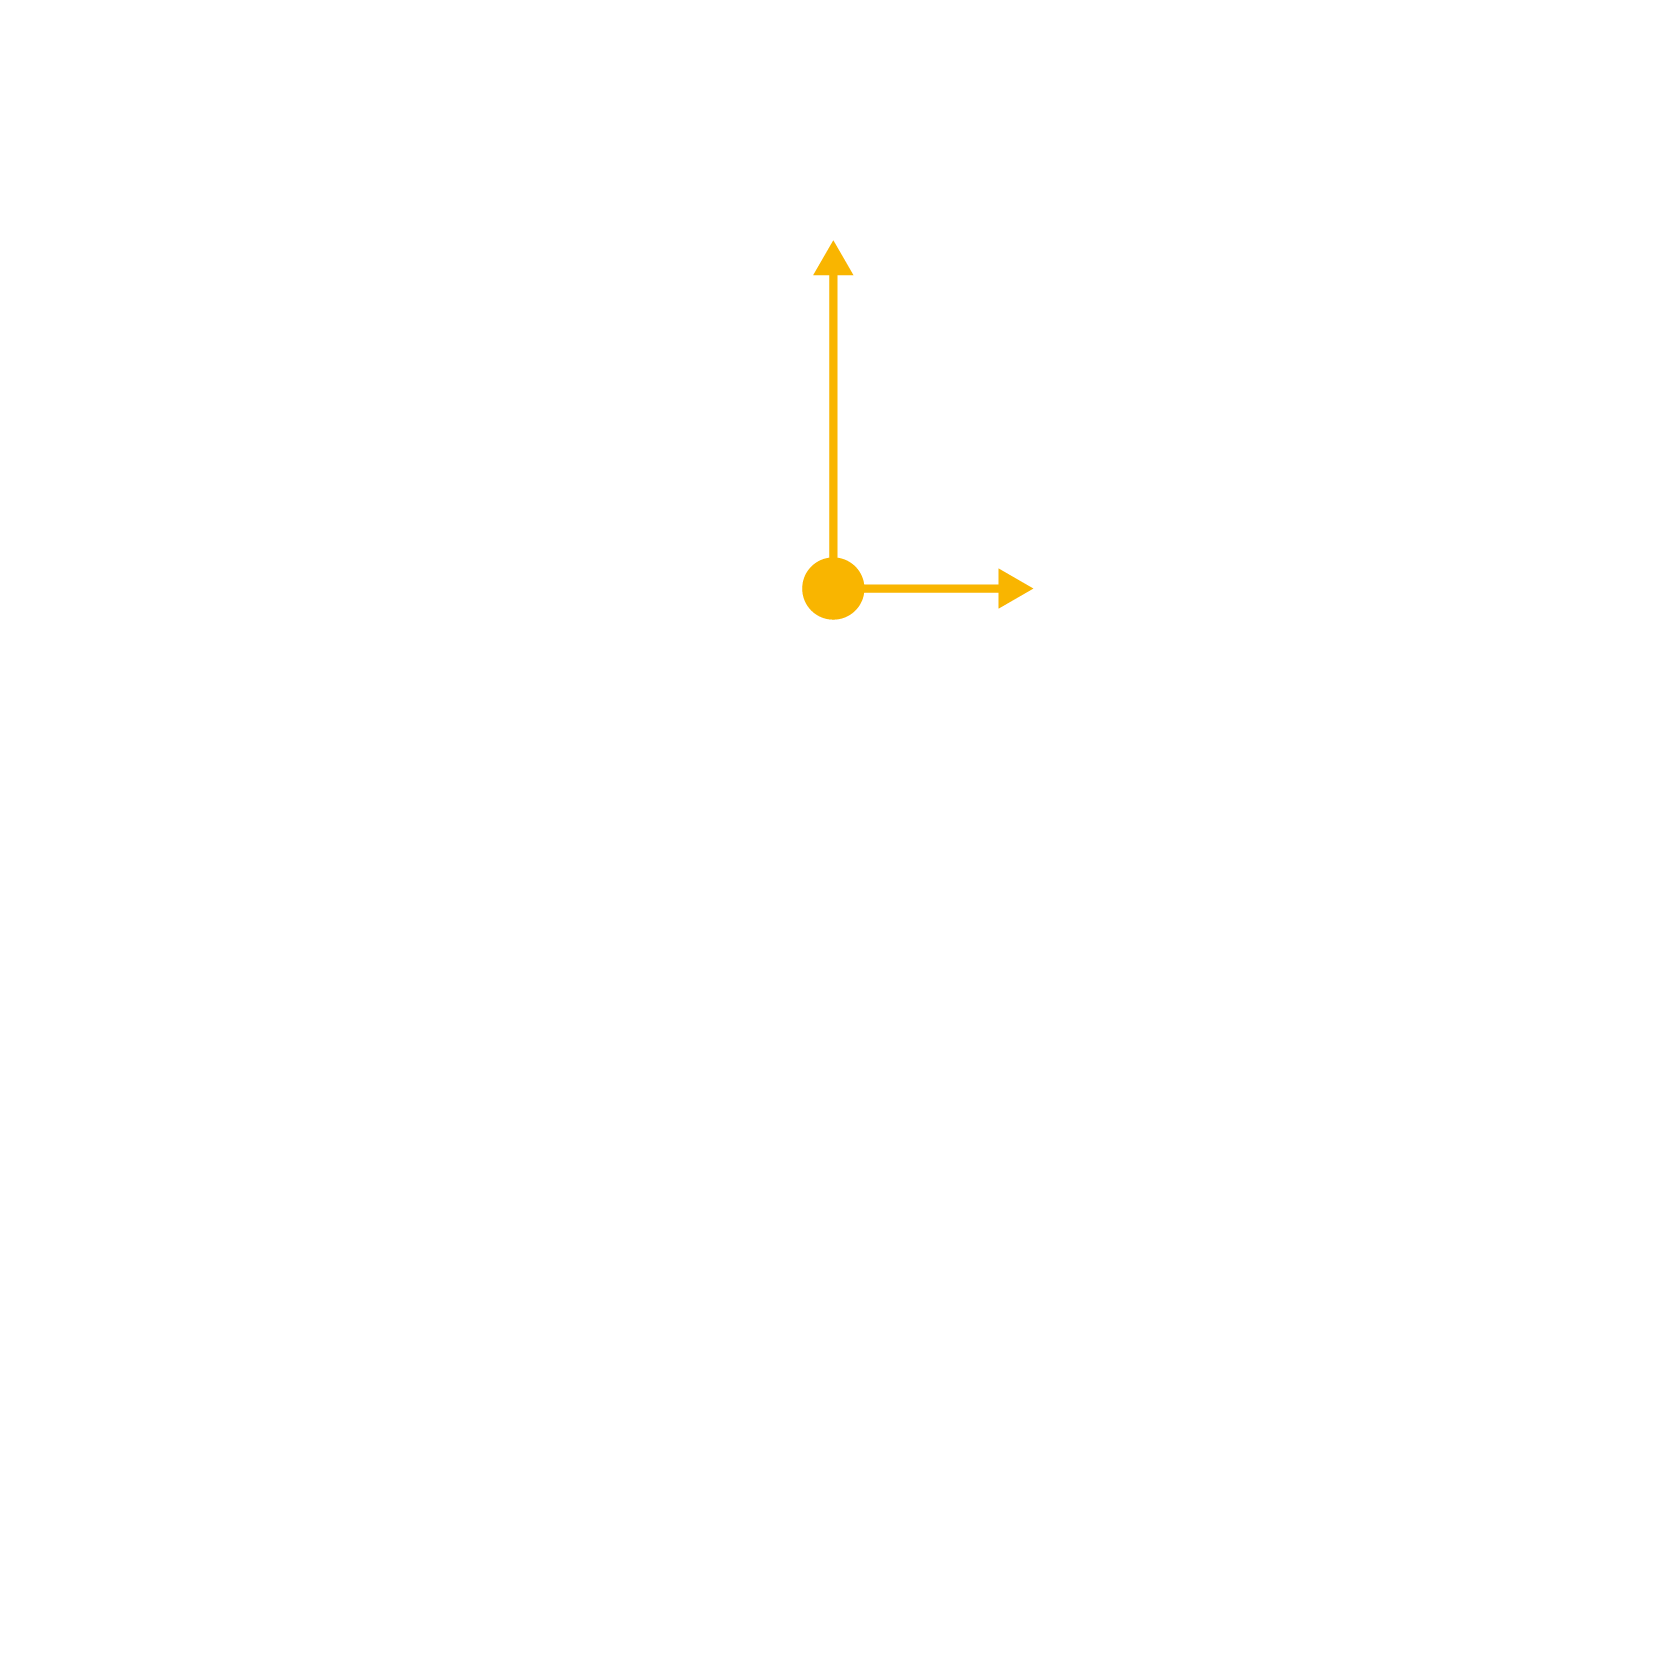 SAT-7 Every hour of the day